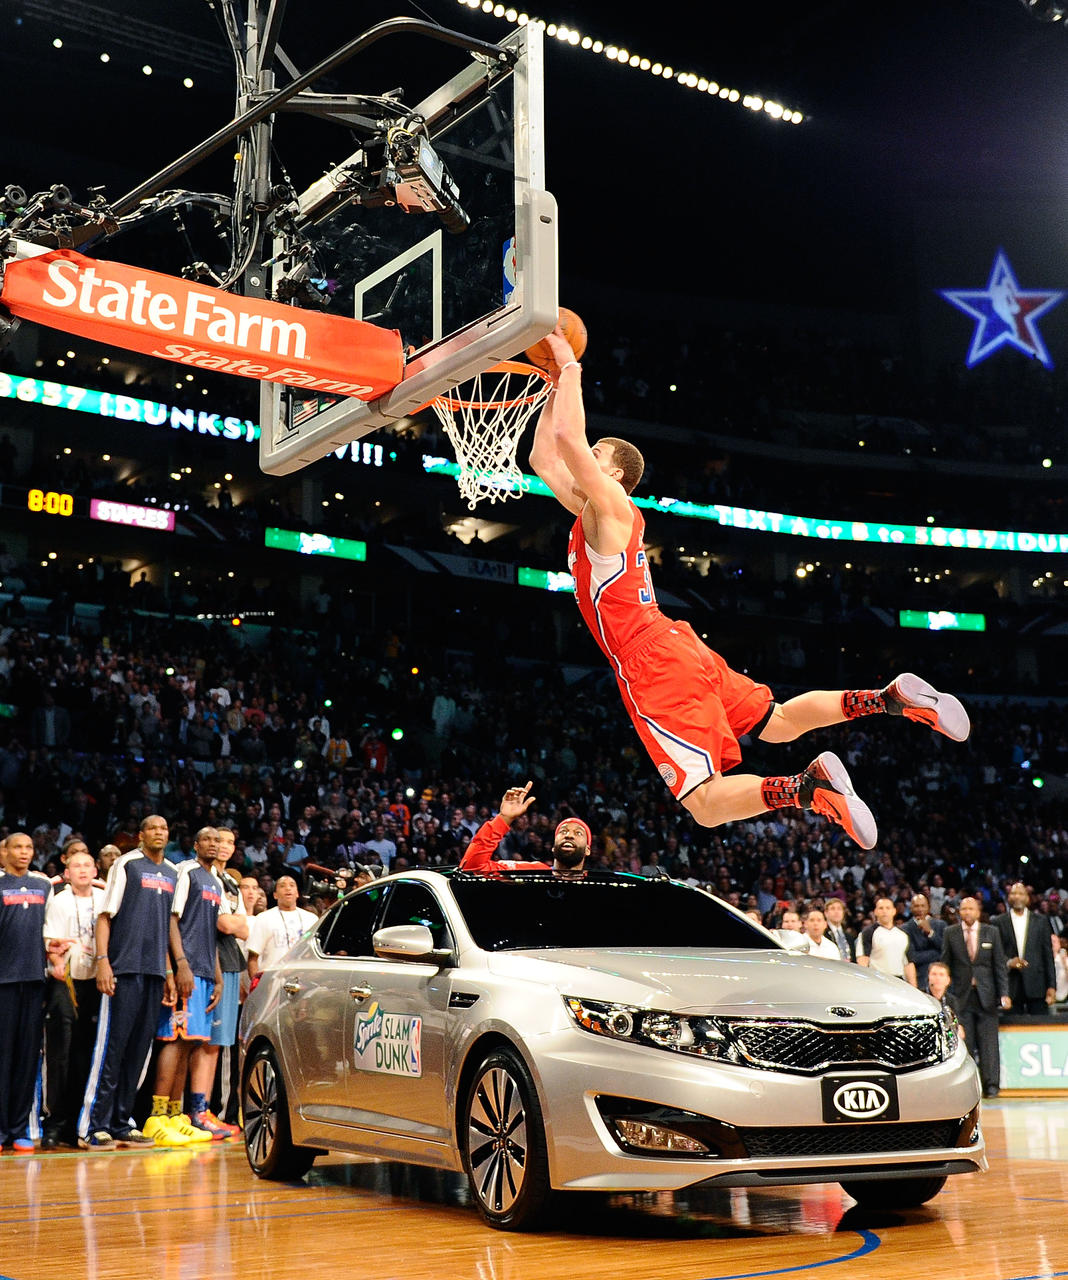 Blake Griffin Dunk Over Car Wallpaper